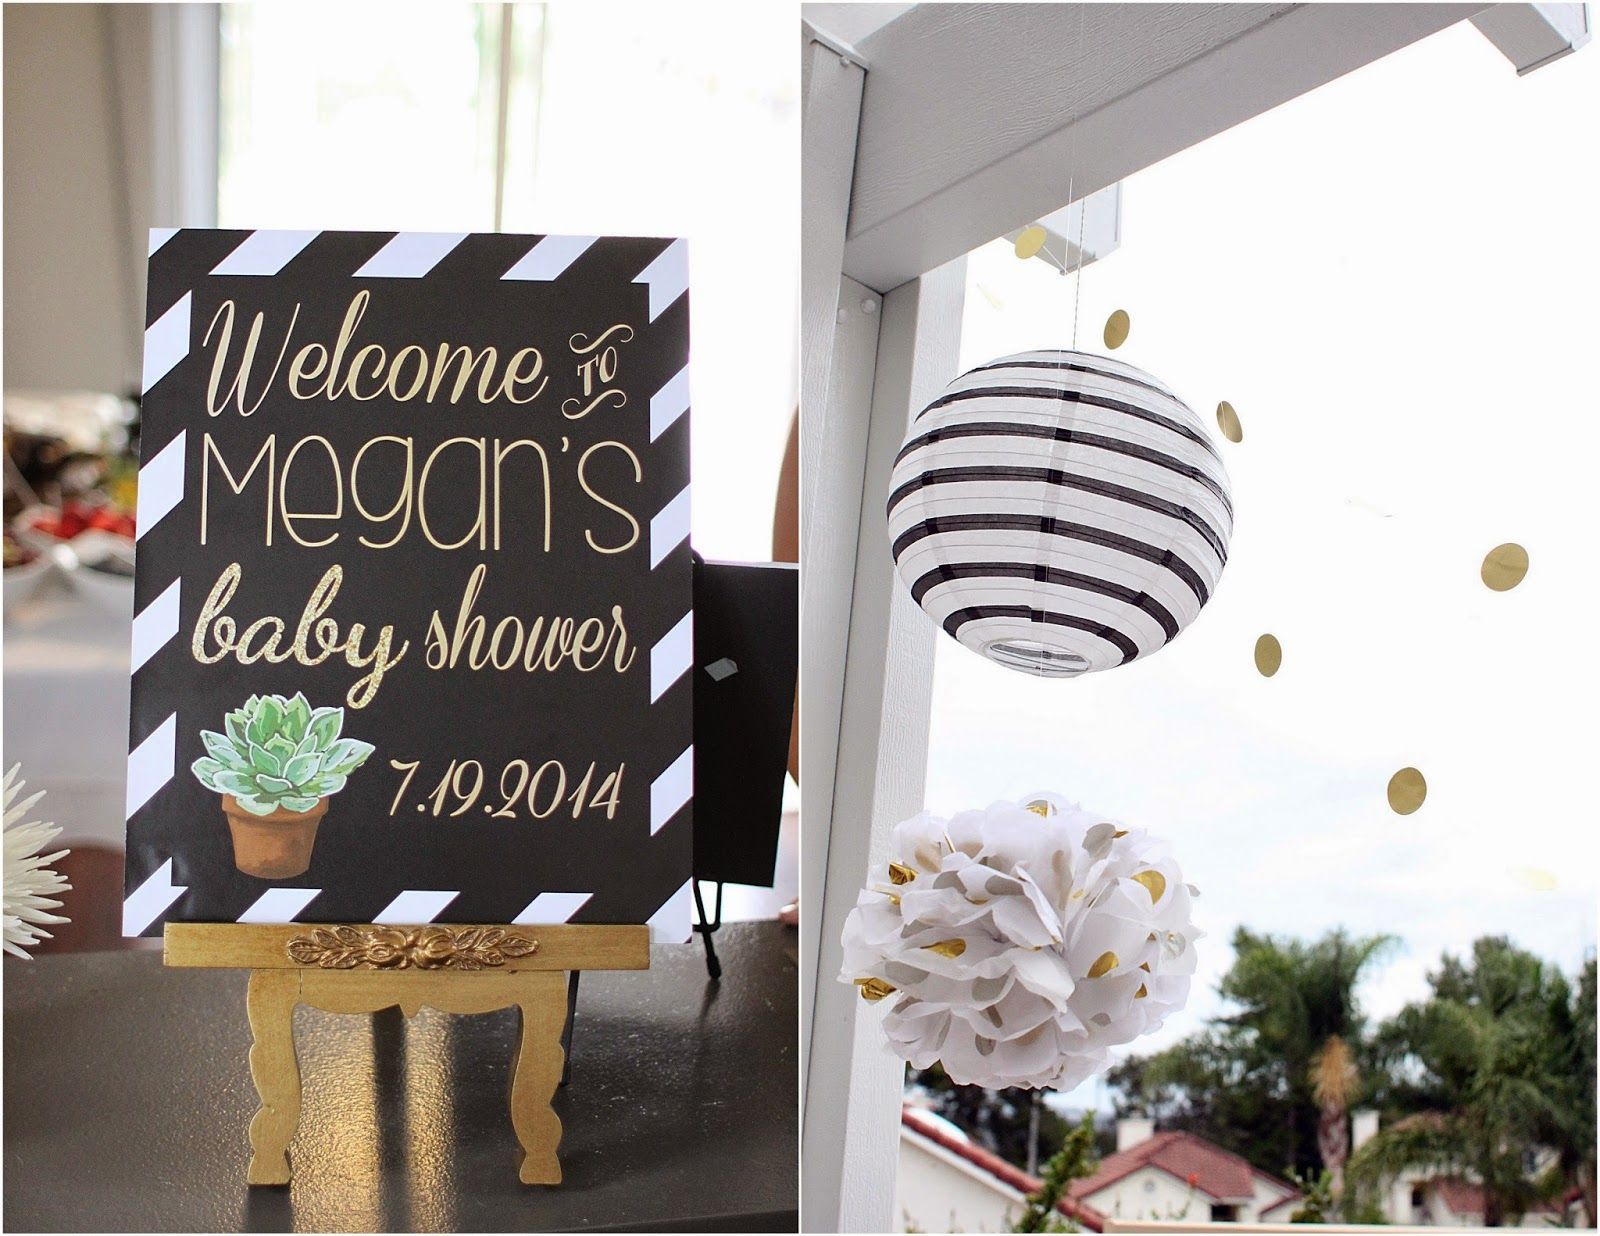 Wel e Baby Shower Sign black white and gold